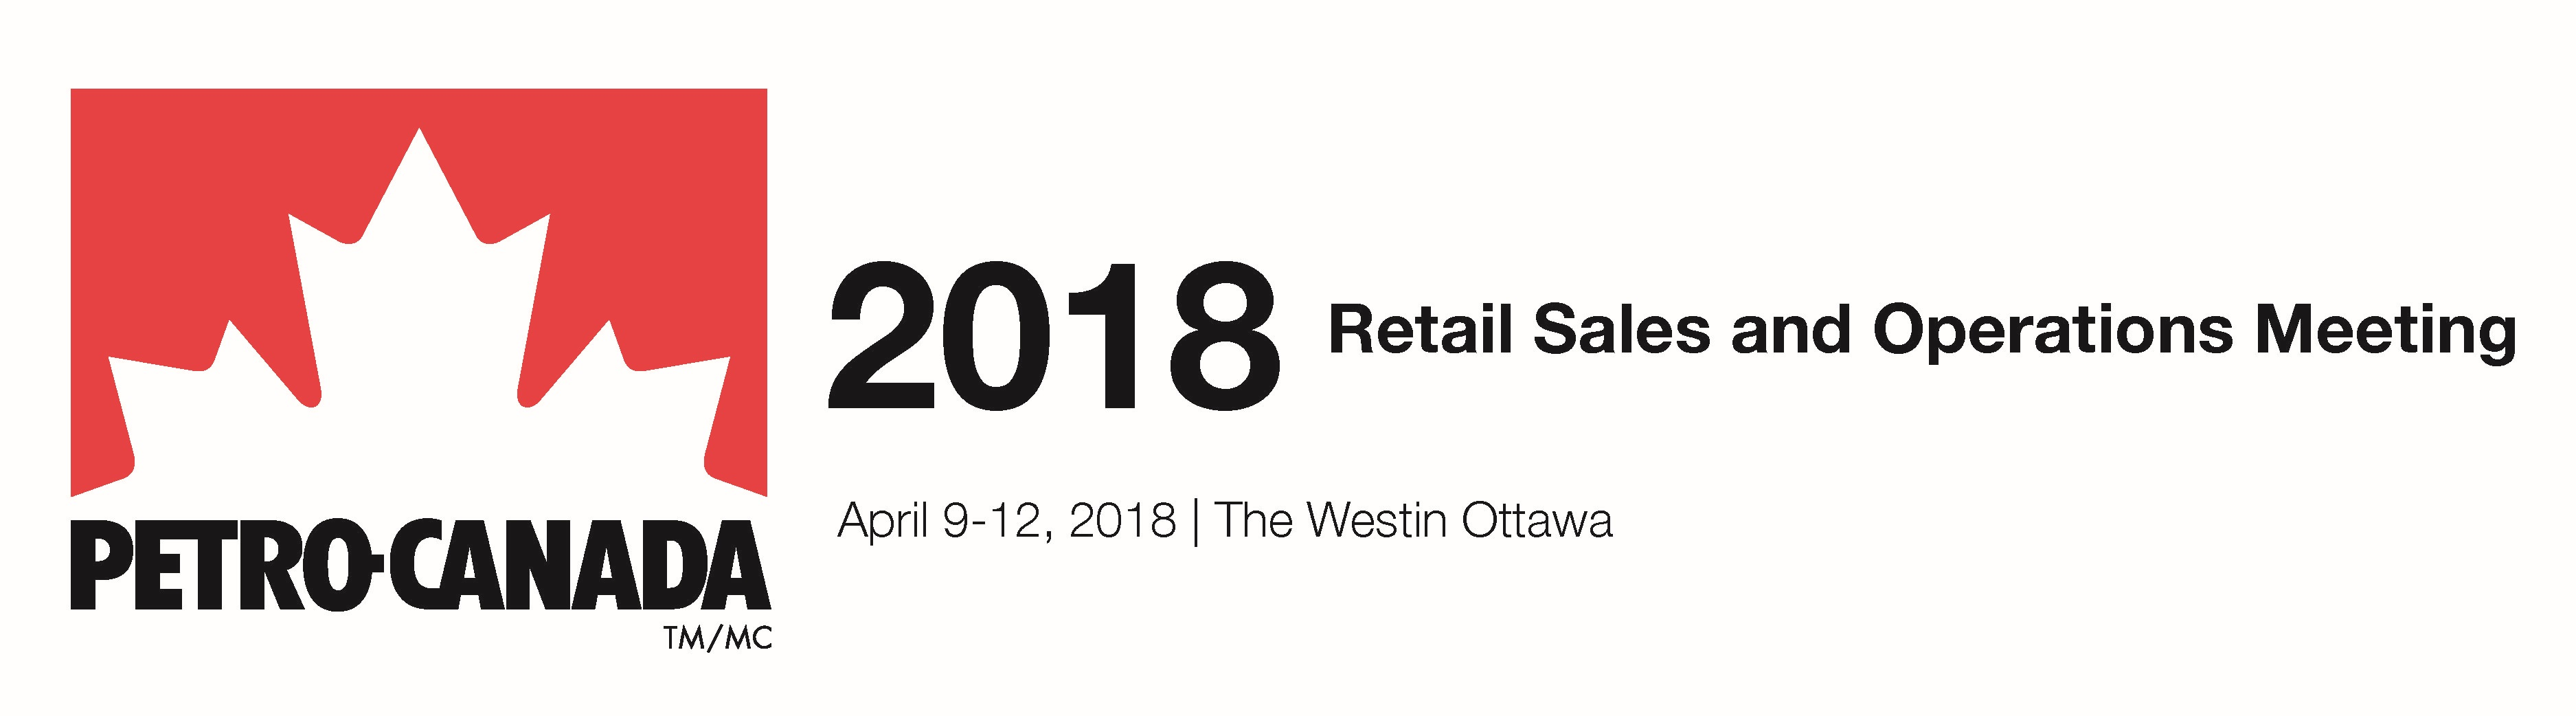 2018 Retail Sales and Operations Meeting